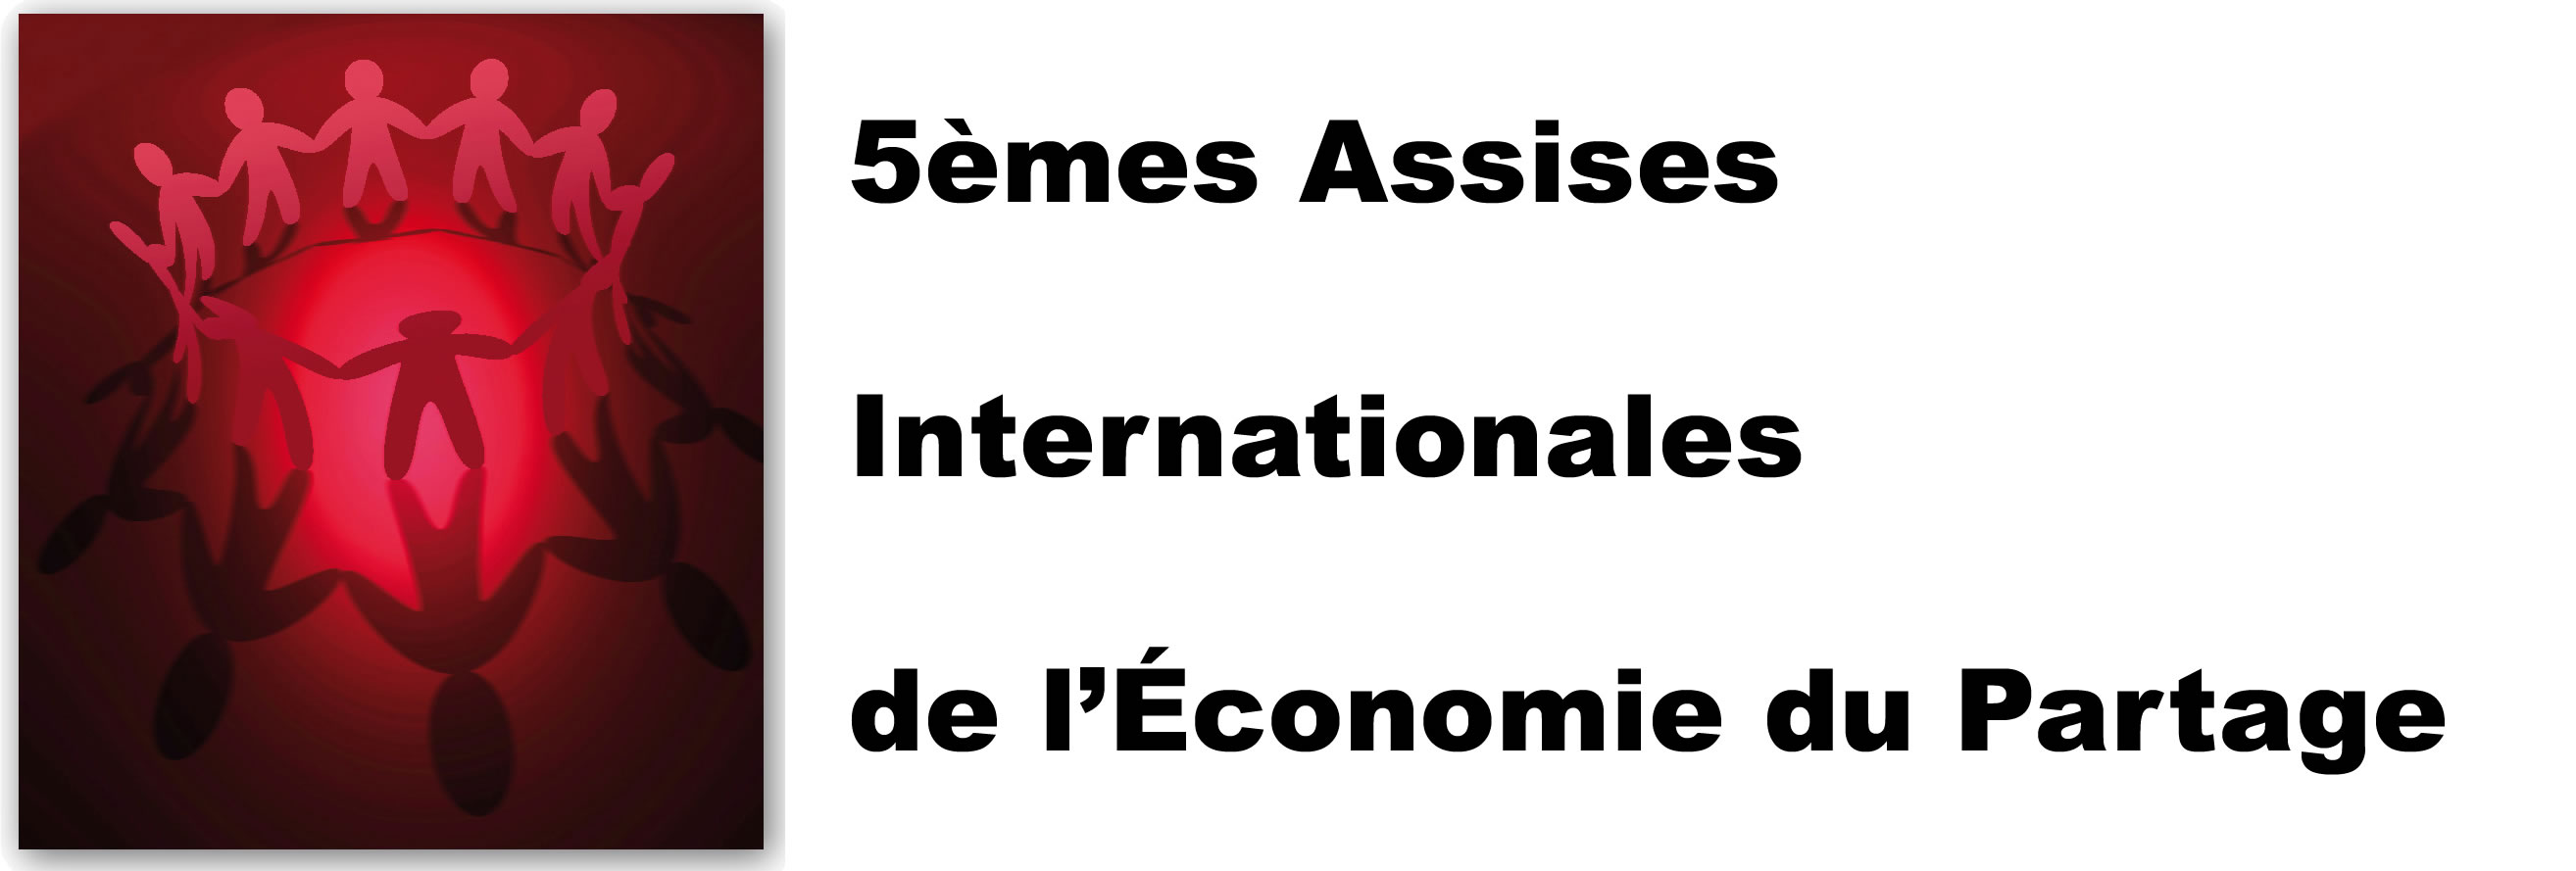 2018 LOGO Assises Internationales de lEconomie du Partage